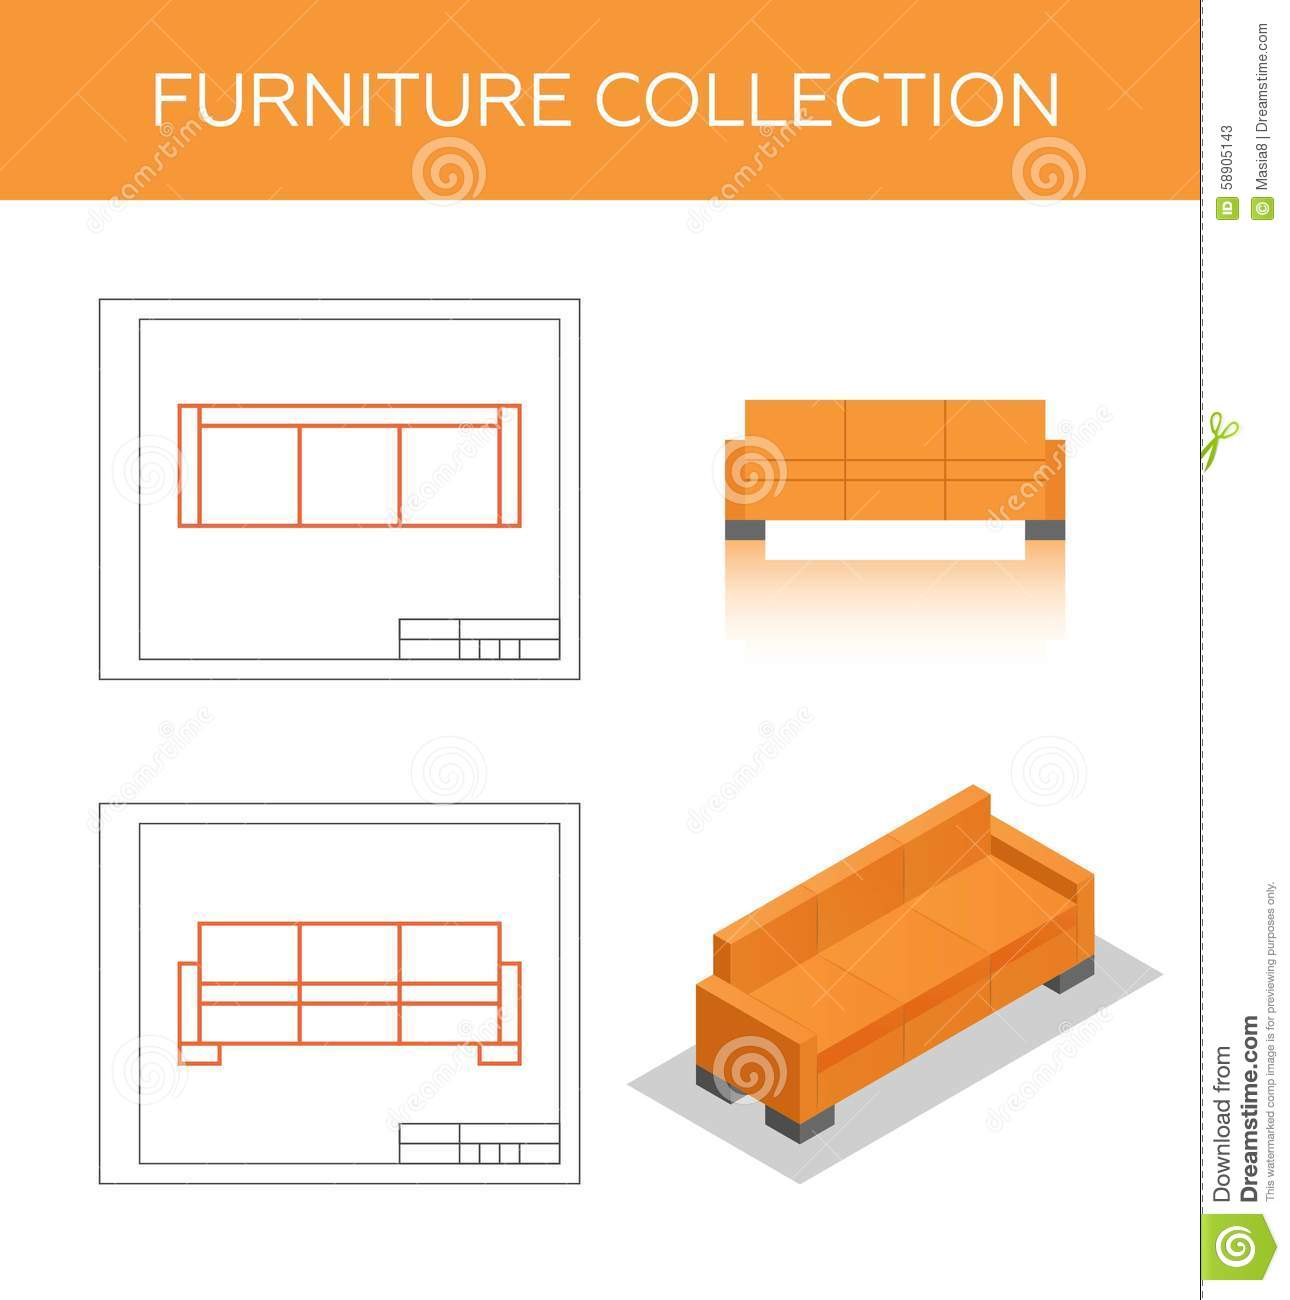 Isometric Icon Of A Sofa Stock Illustration - Image: 58905143